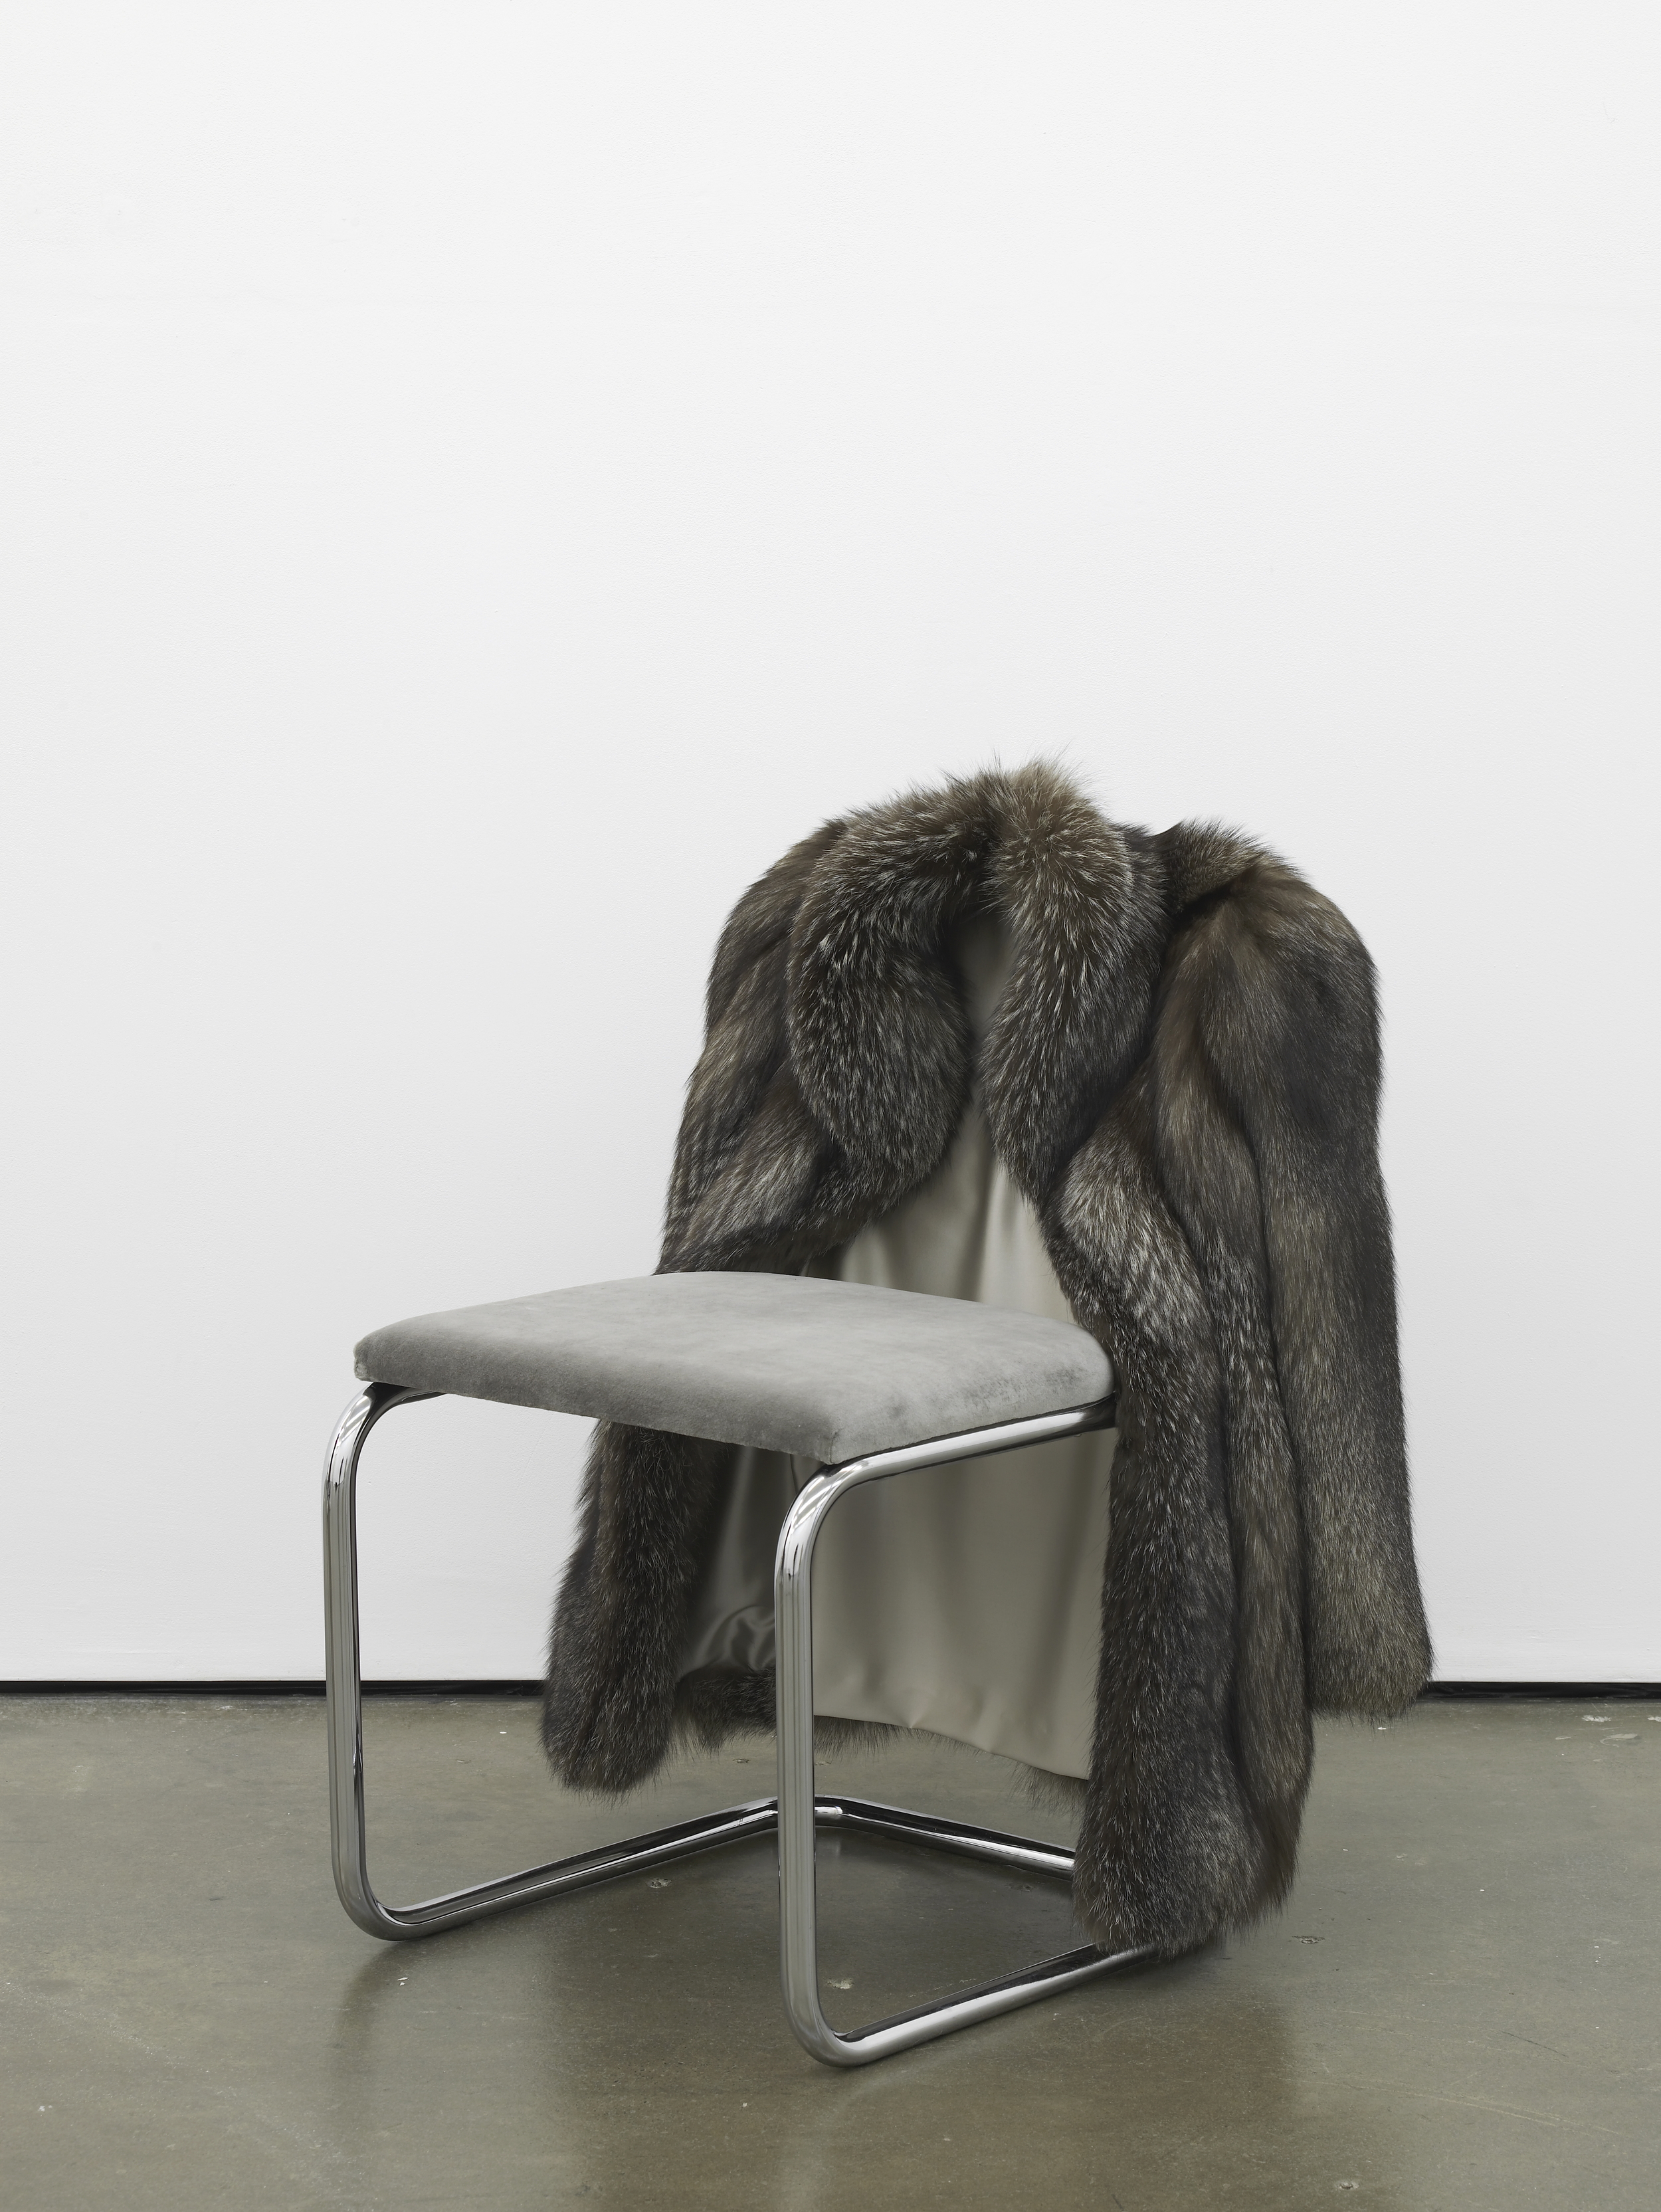 Untitled Chair - FXI-0    2015 Vintage fur, steel tubing, upholstery, silk and velvet 85 x 65 x 60 cm / 33.4 x 25.5 x 23.6 in